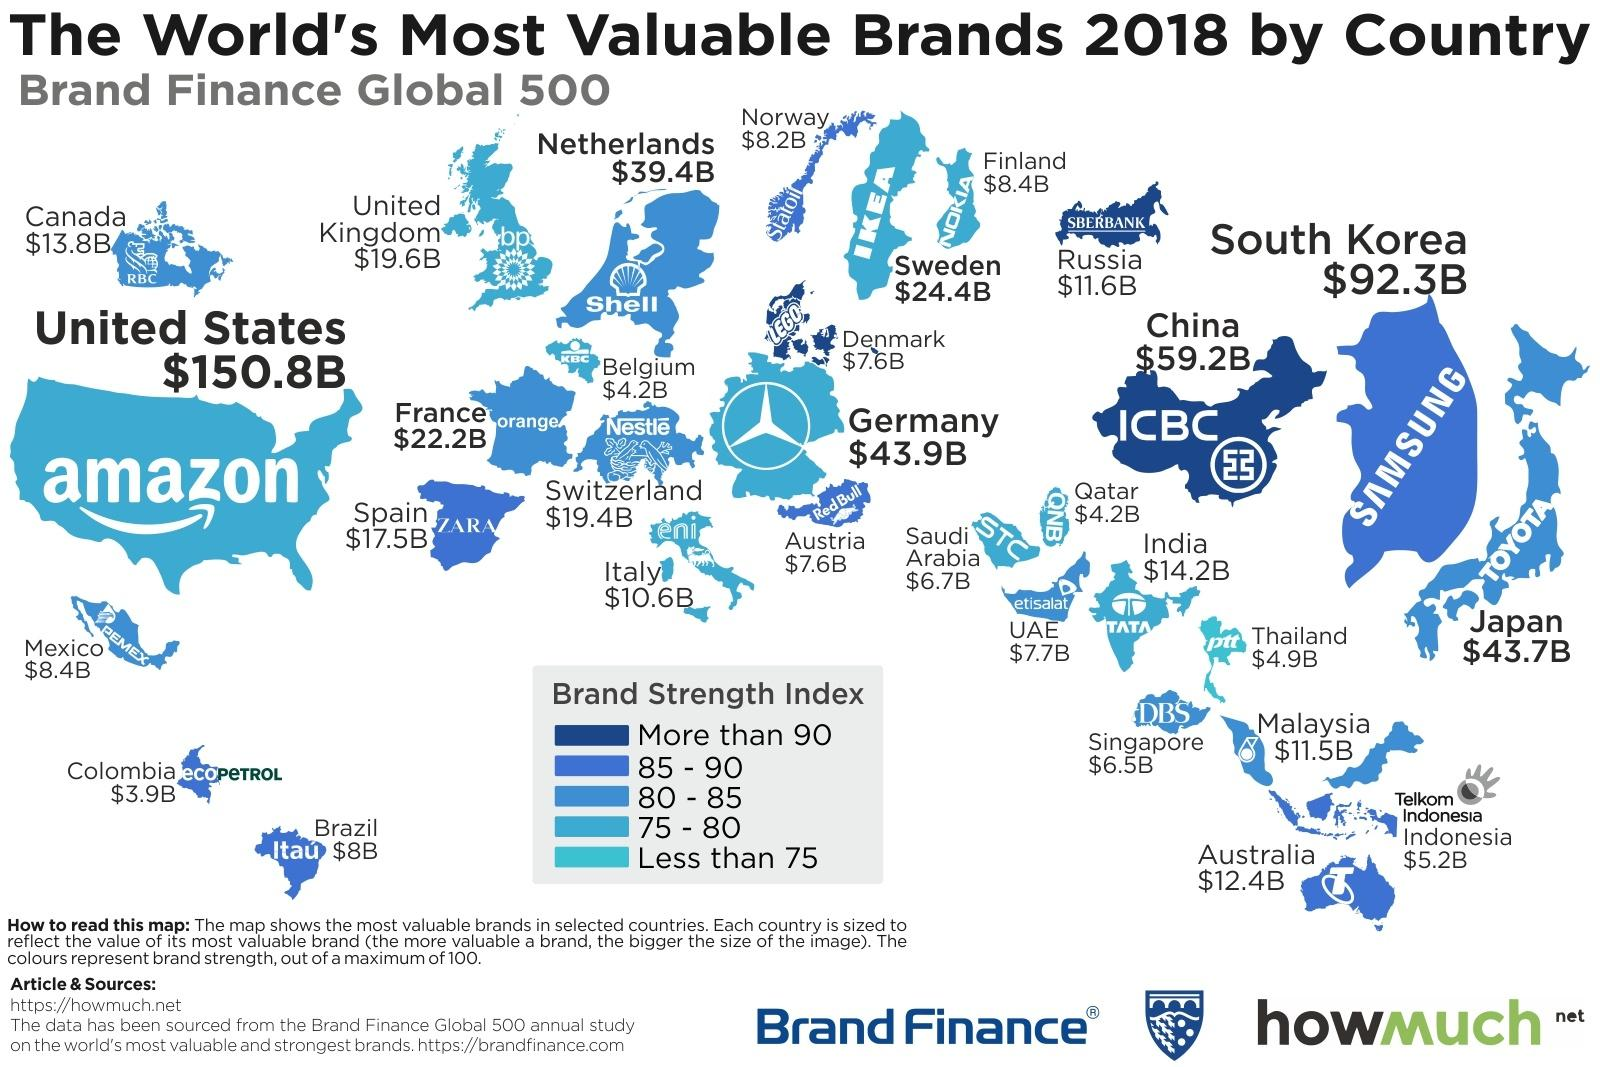 Top 10 Countries with the Most Valuable Brands in the World